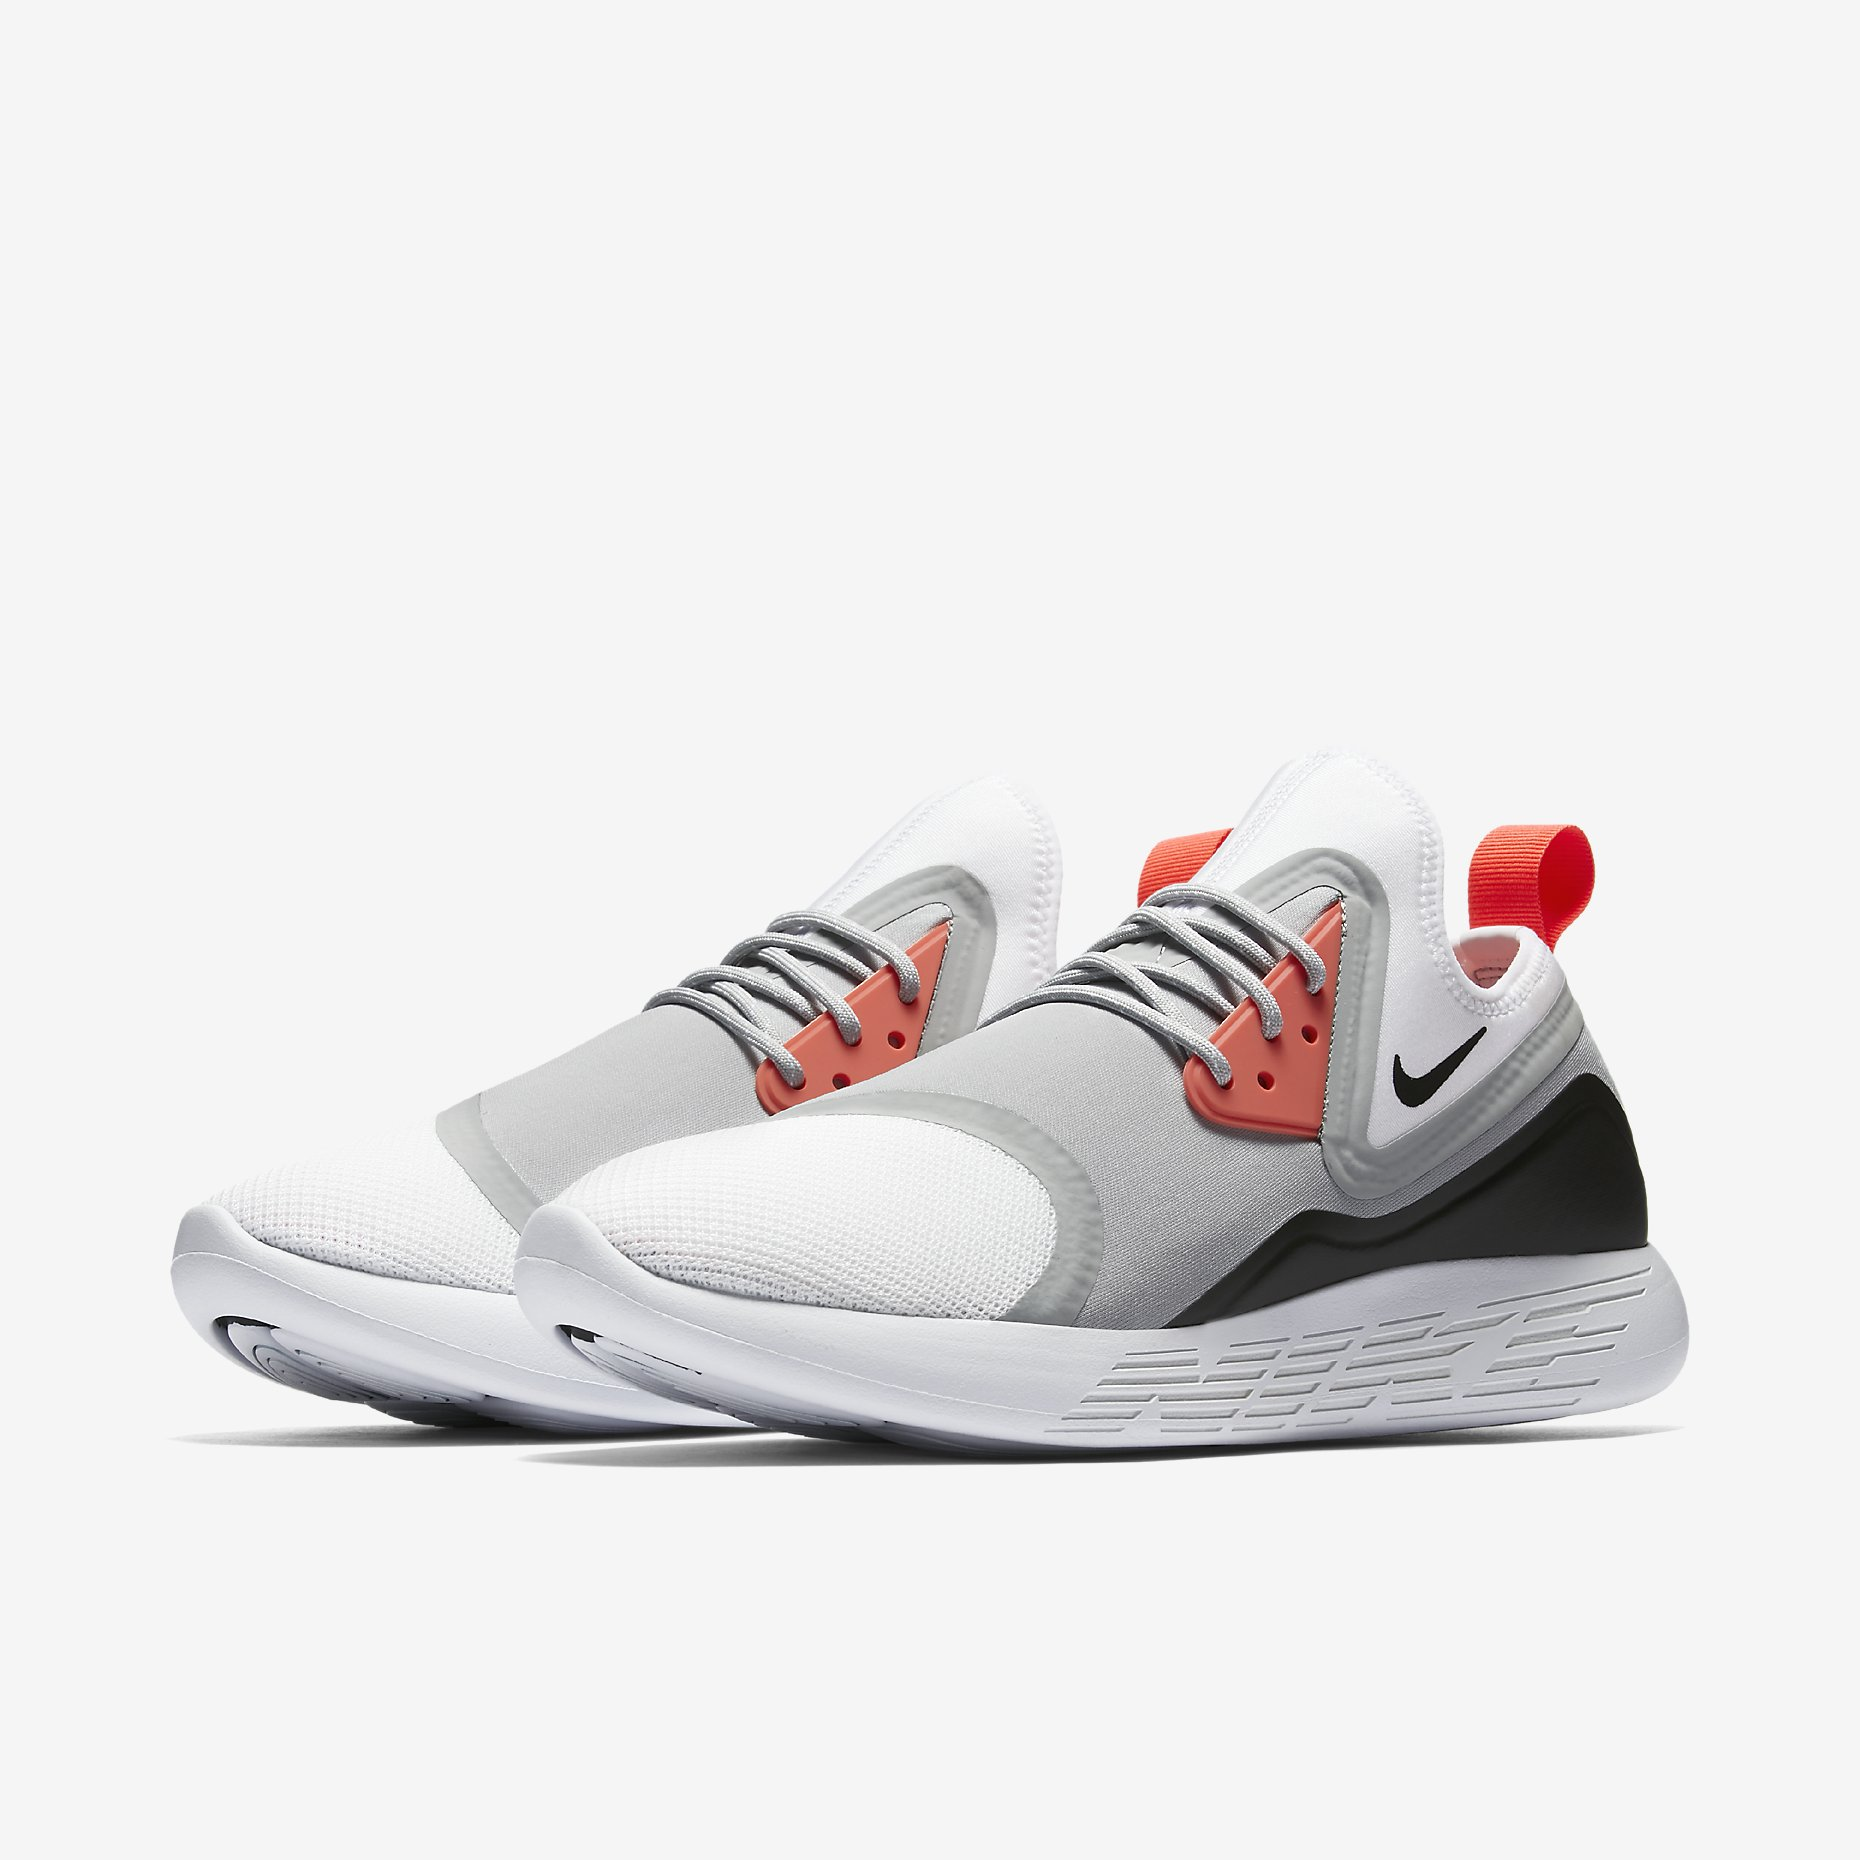 Nike LunarCharge Essential BN Infrared 933811 010 2